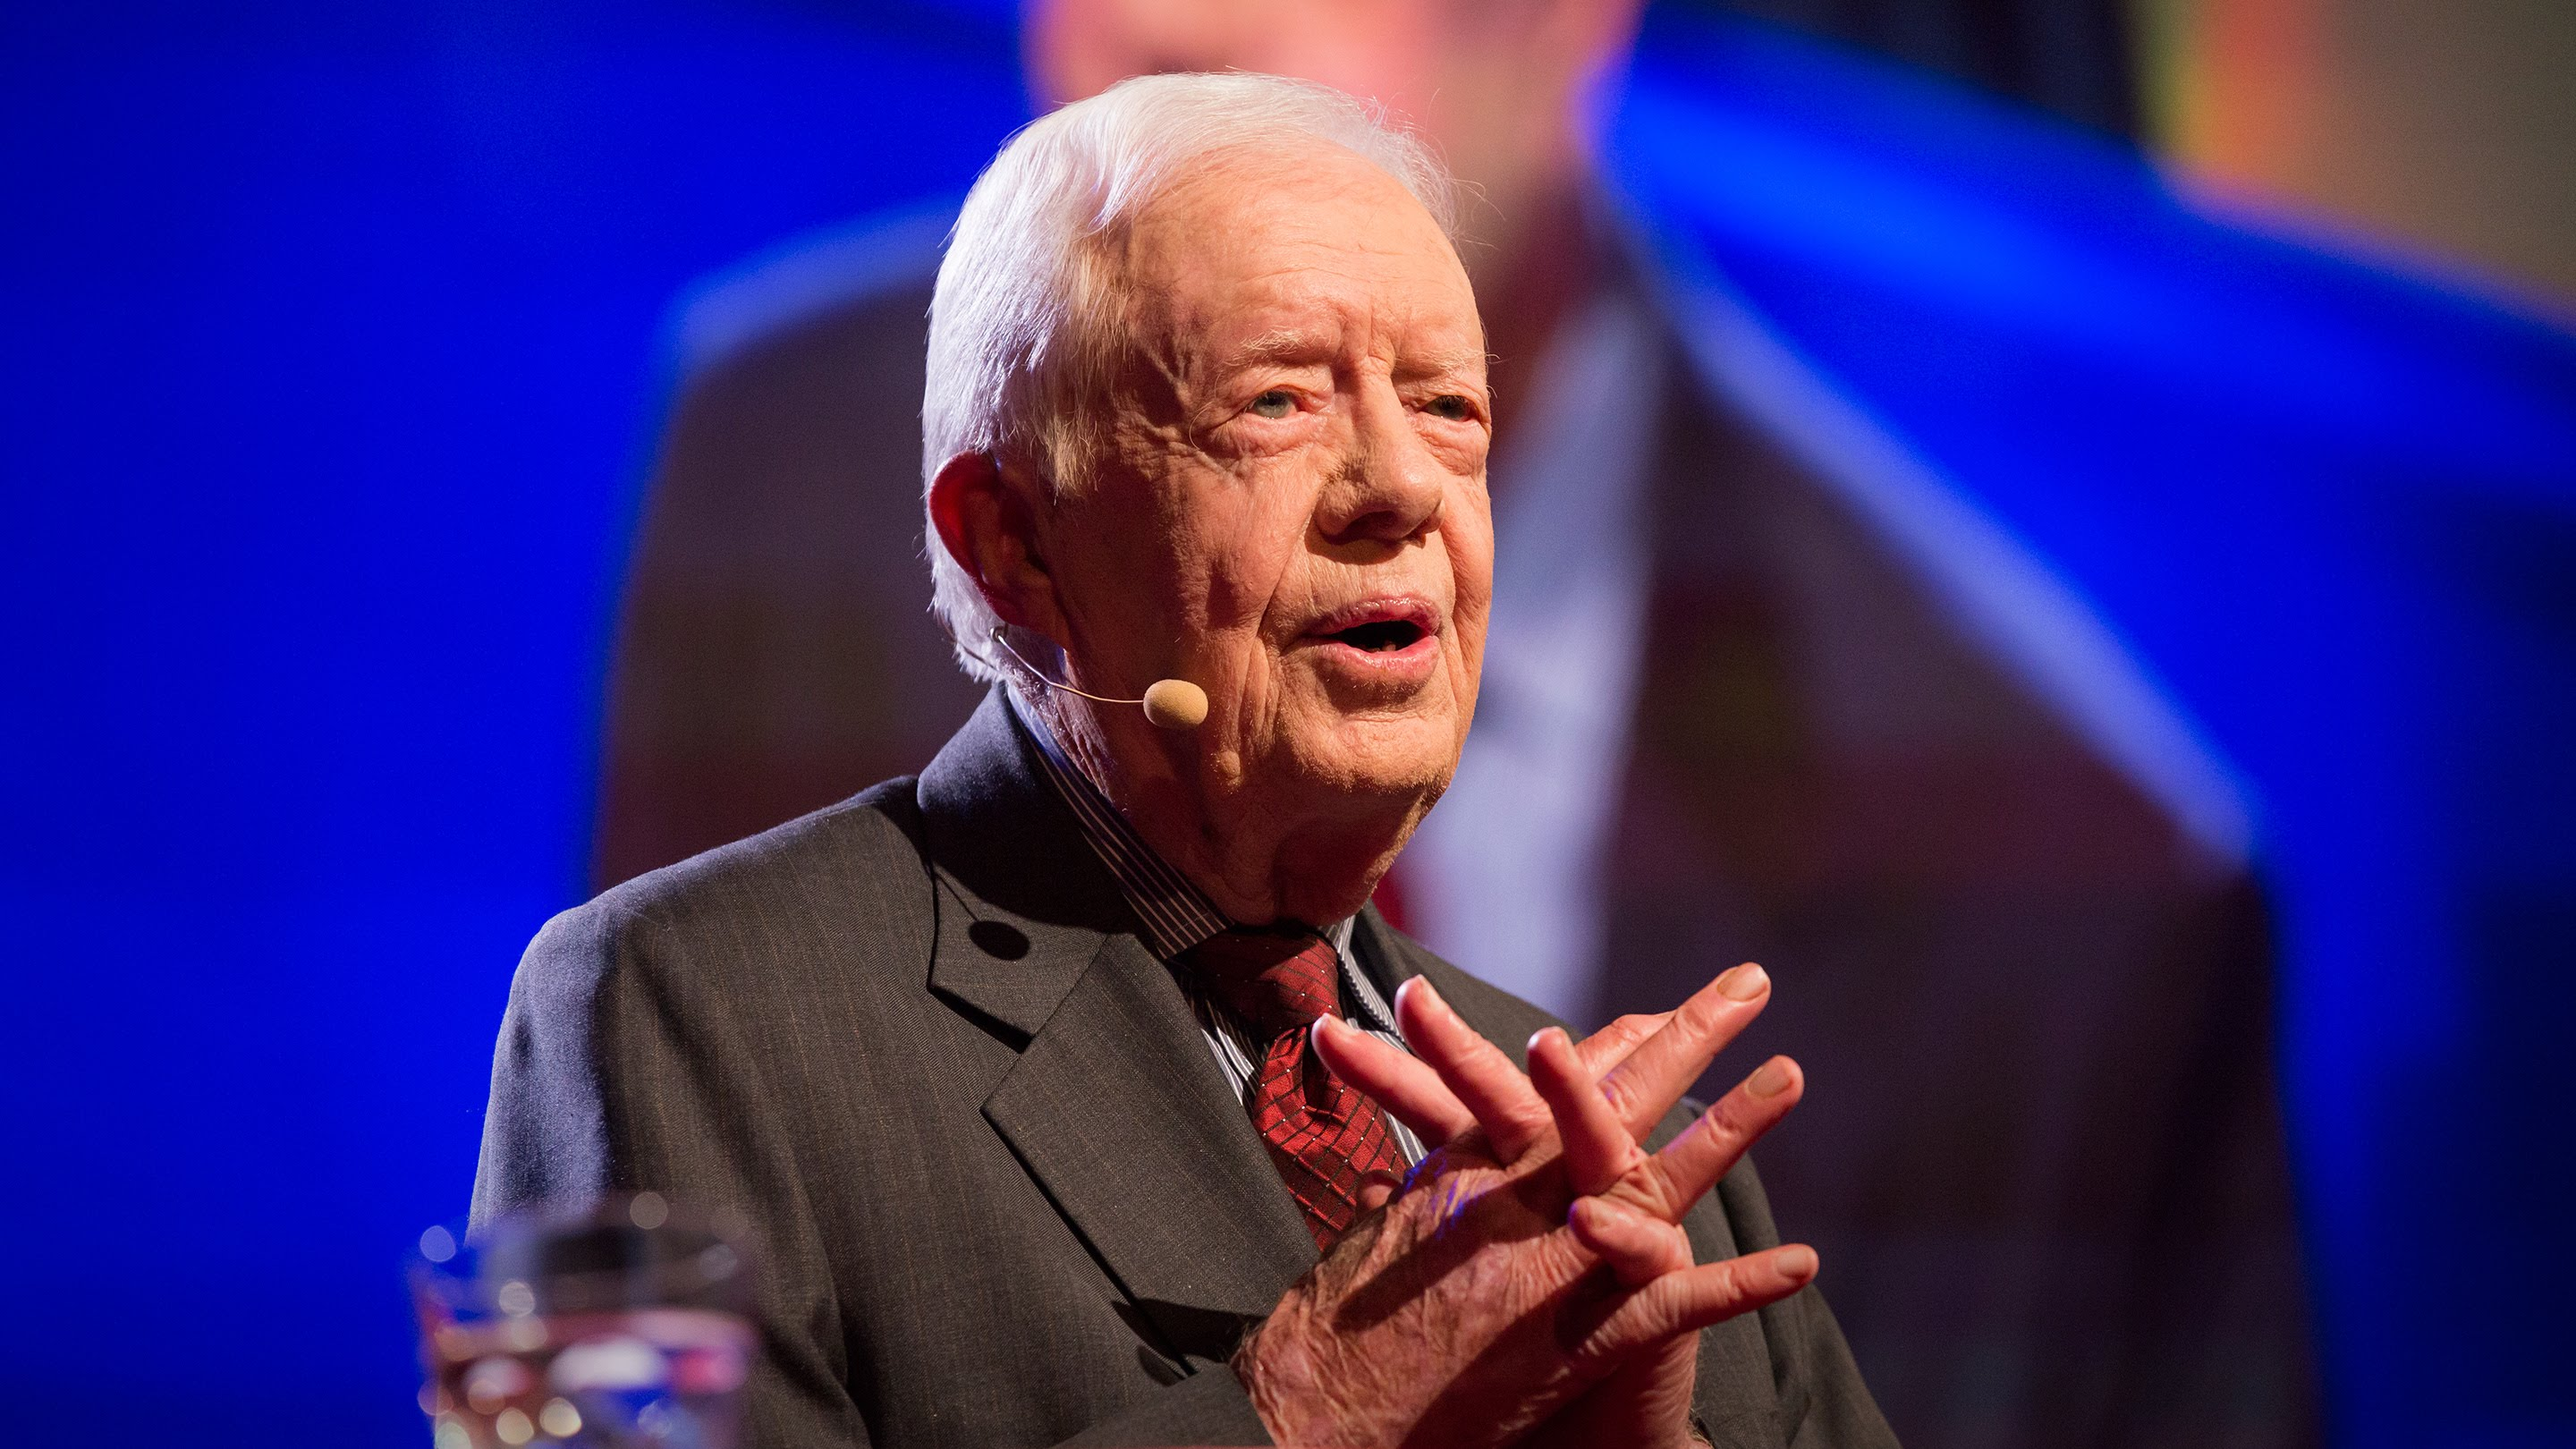 「Jimmy Carter:這世界對女性的人權損害」- Why I Believe the Mistreatment of Women Is the Number One Human Rights Abuse